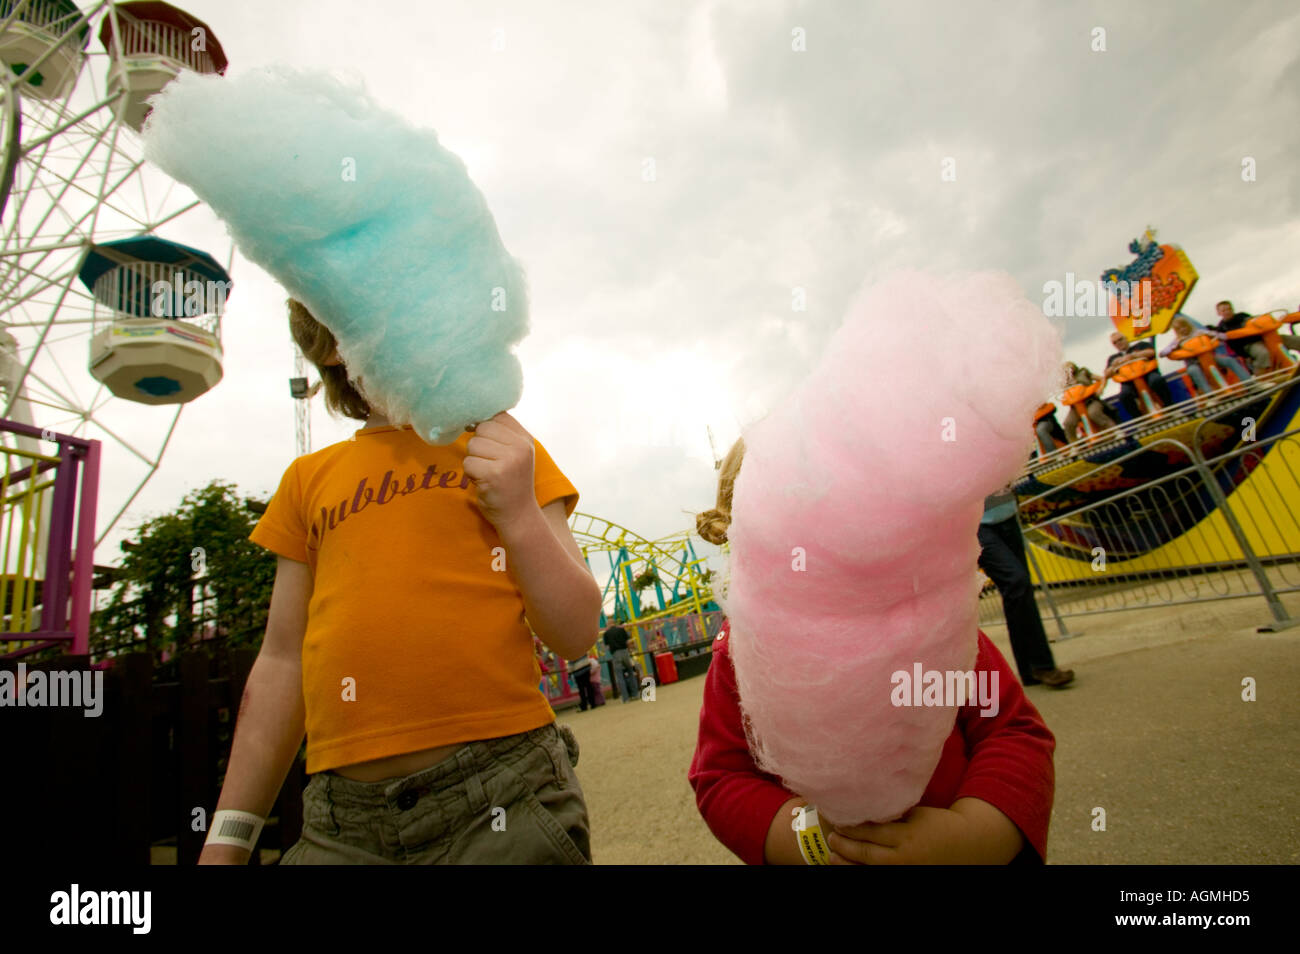 Children eating candyfloss at the funfair - Stock Image